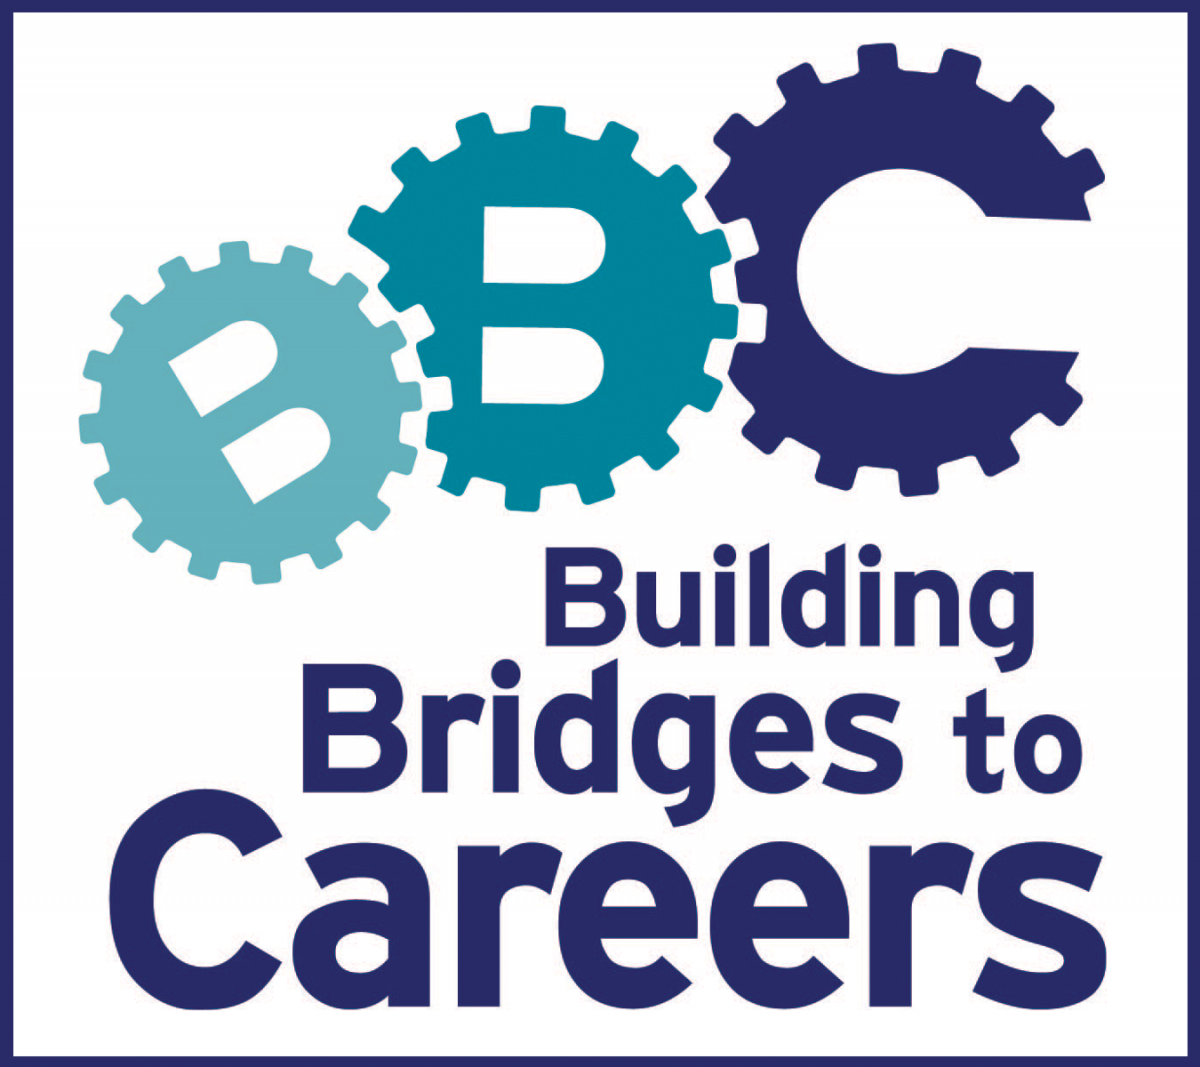 Building Bridges to Careers logo